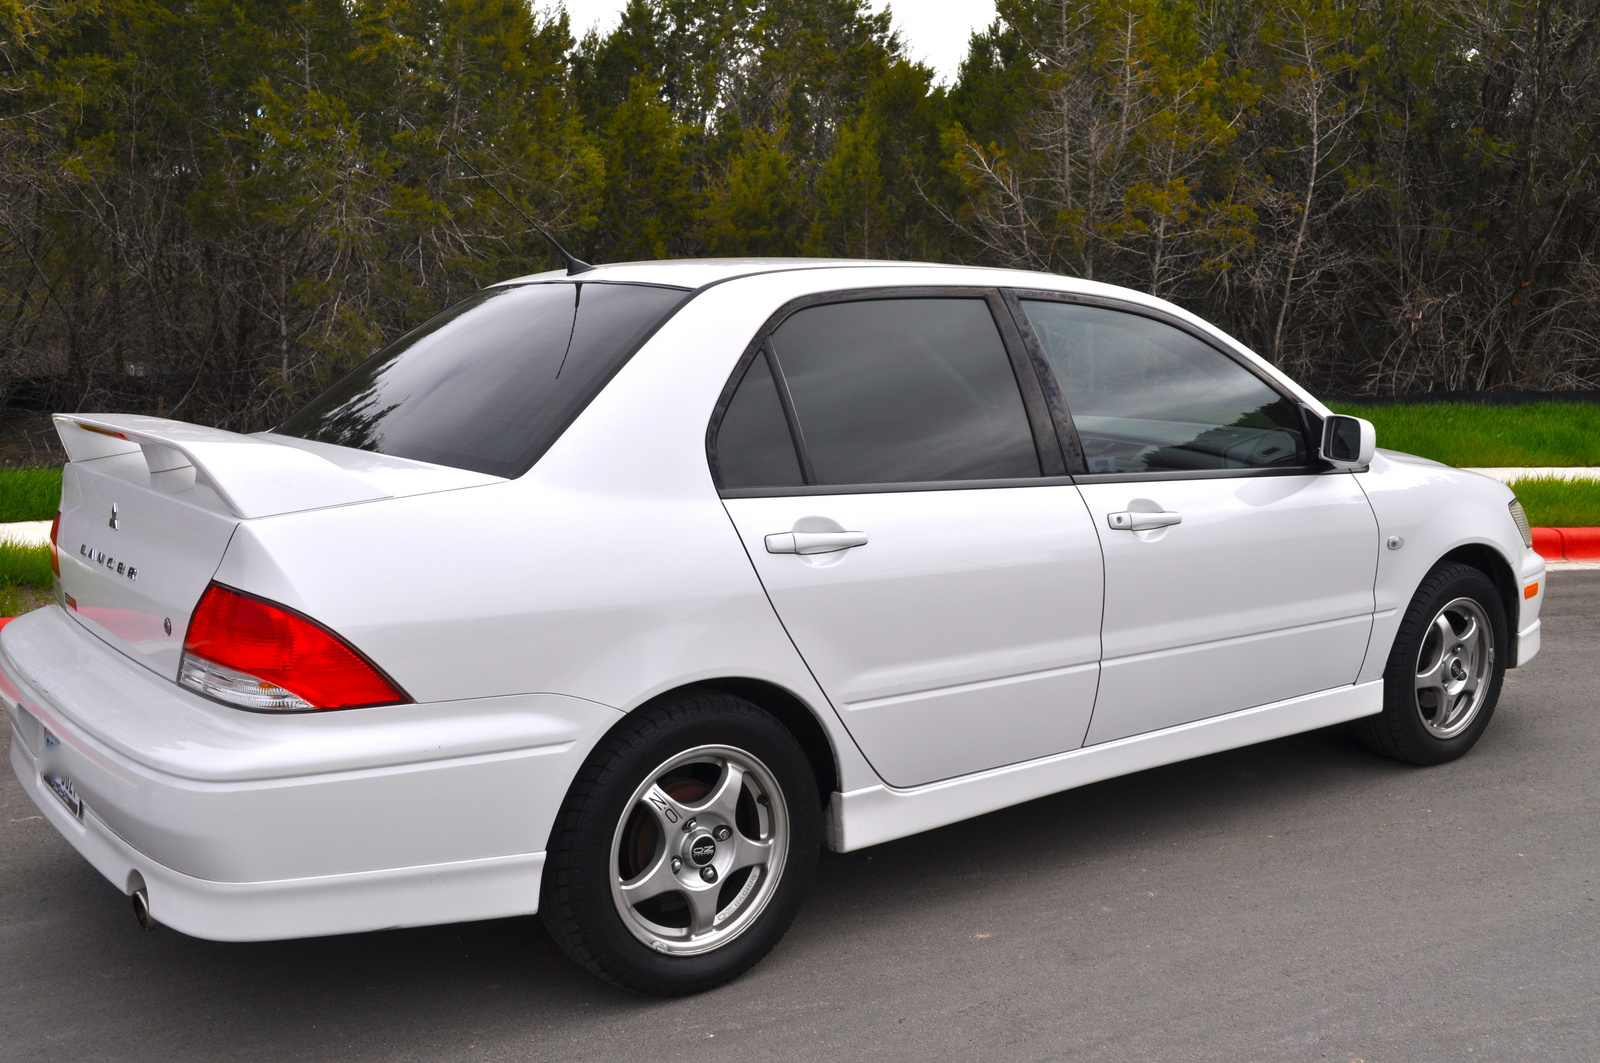 mitsubishi lancer 2003 review amazing pictures and images look at the car. Black Bedroom Furniture Sets. Home Design Ideas